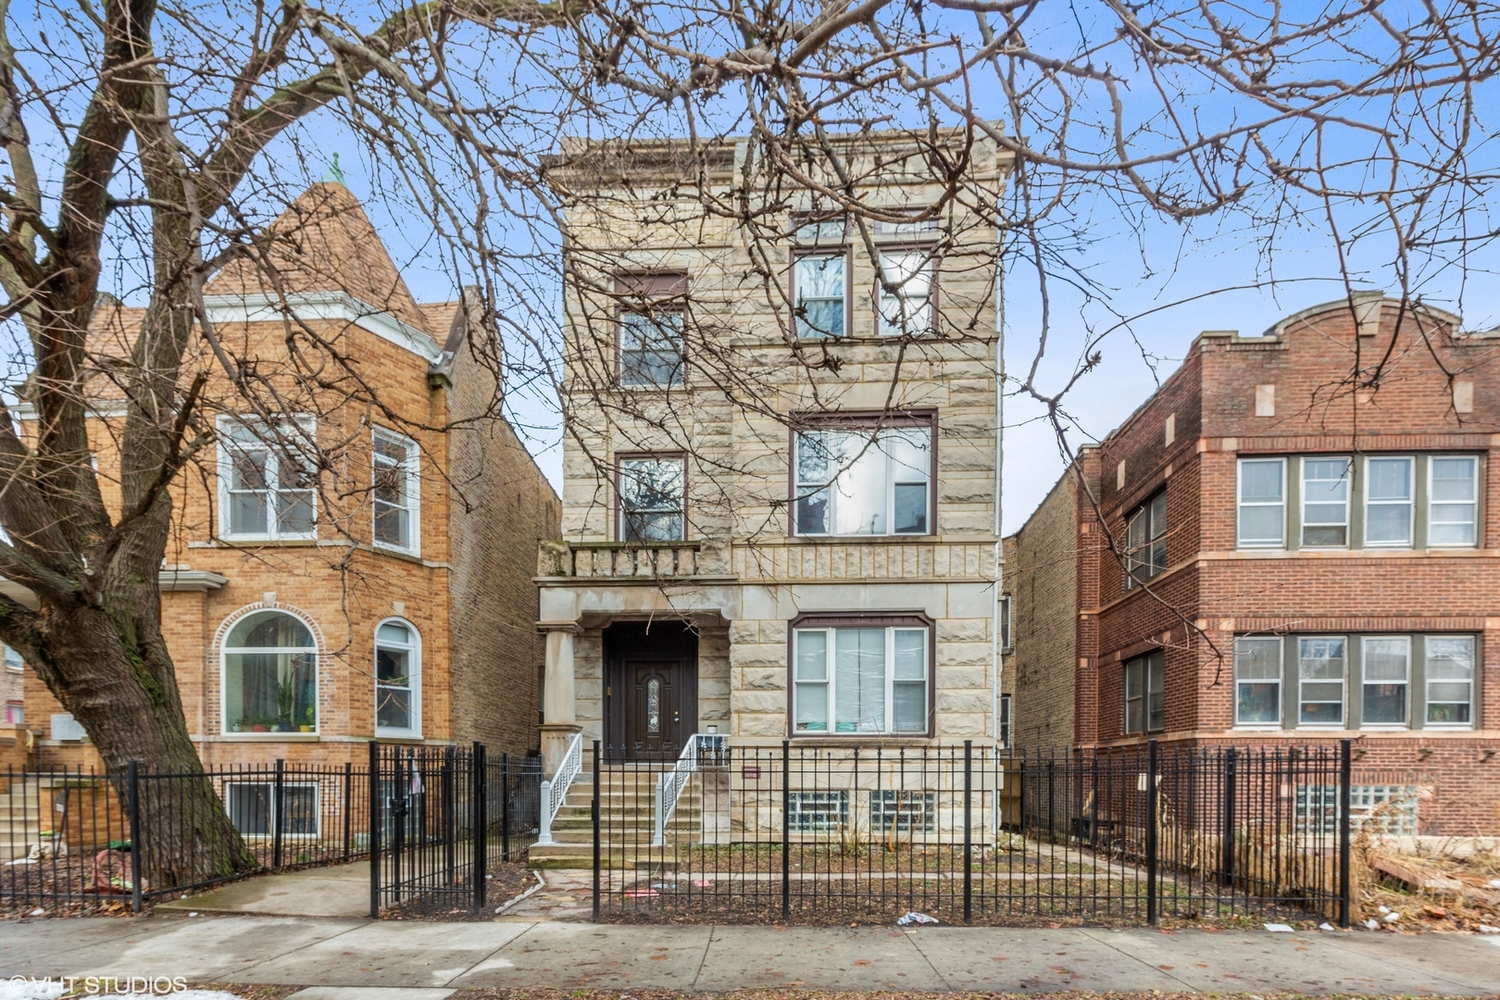 3534 West Fulton Boulevard, Unit 2 Chicago, IL 60624